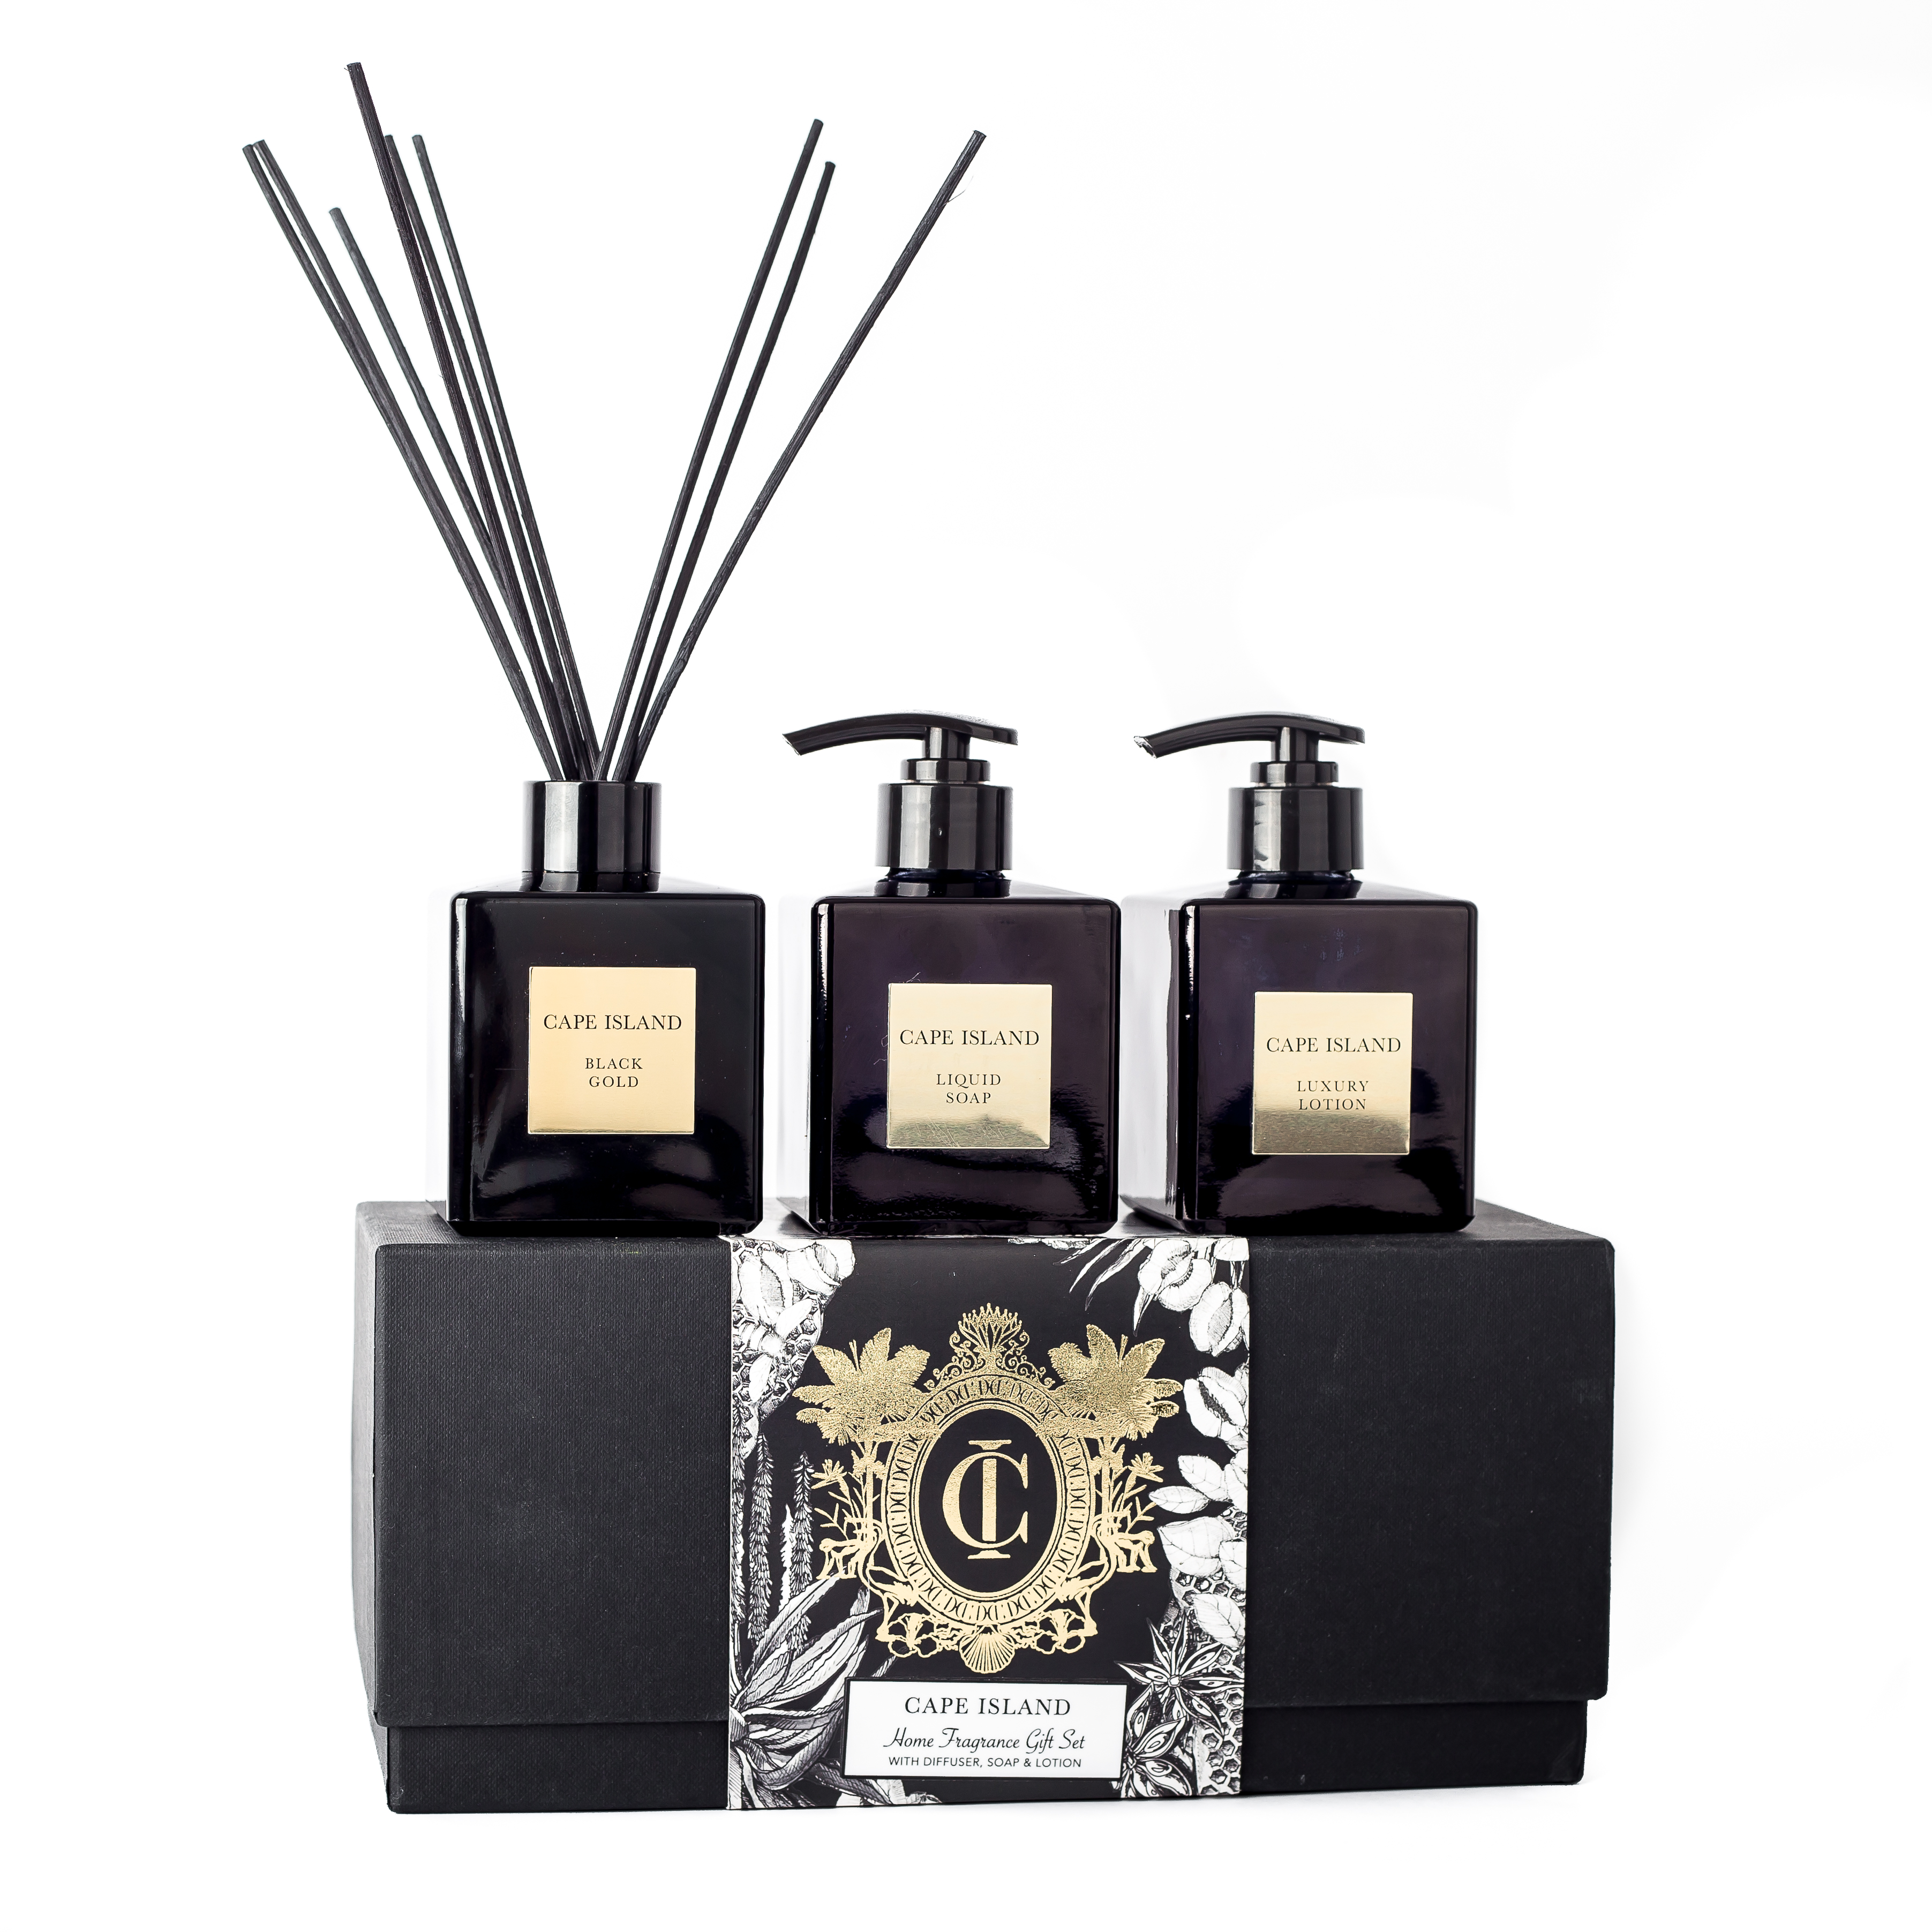 Black Gold Soap, Lotion and 150ml fragrance diffuser